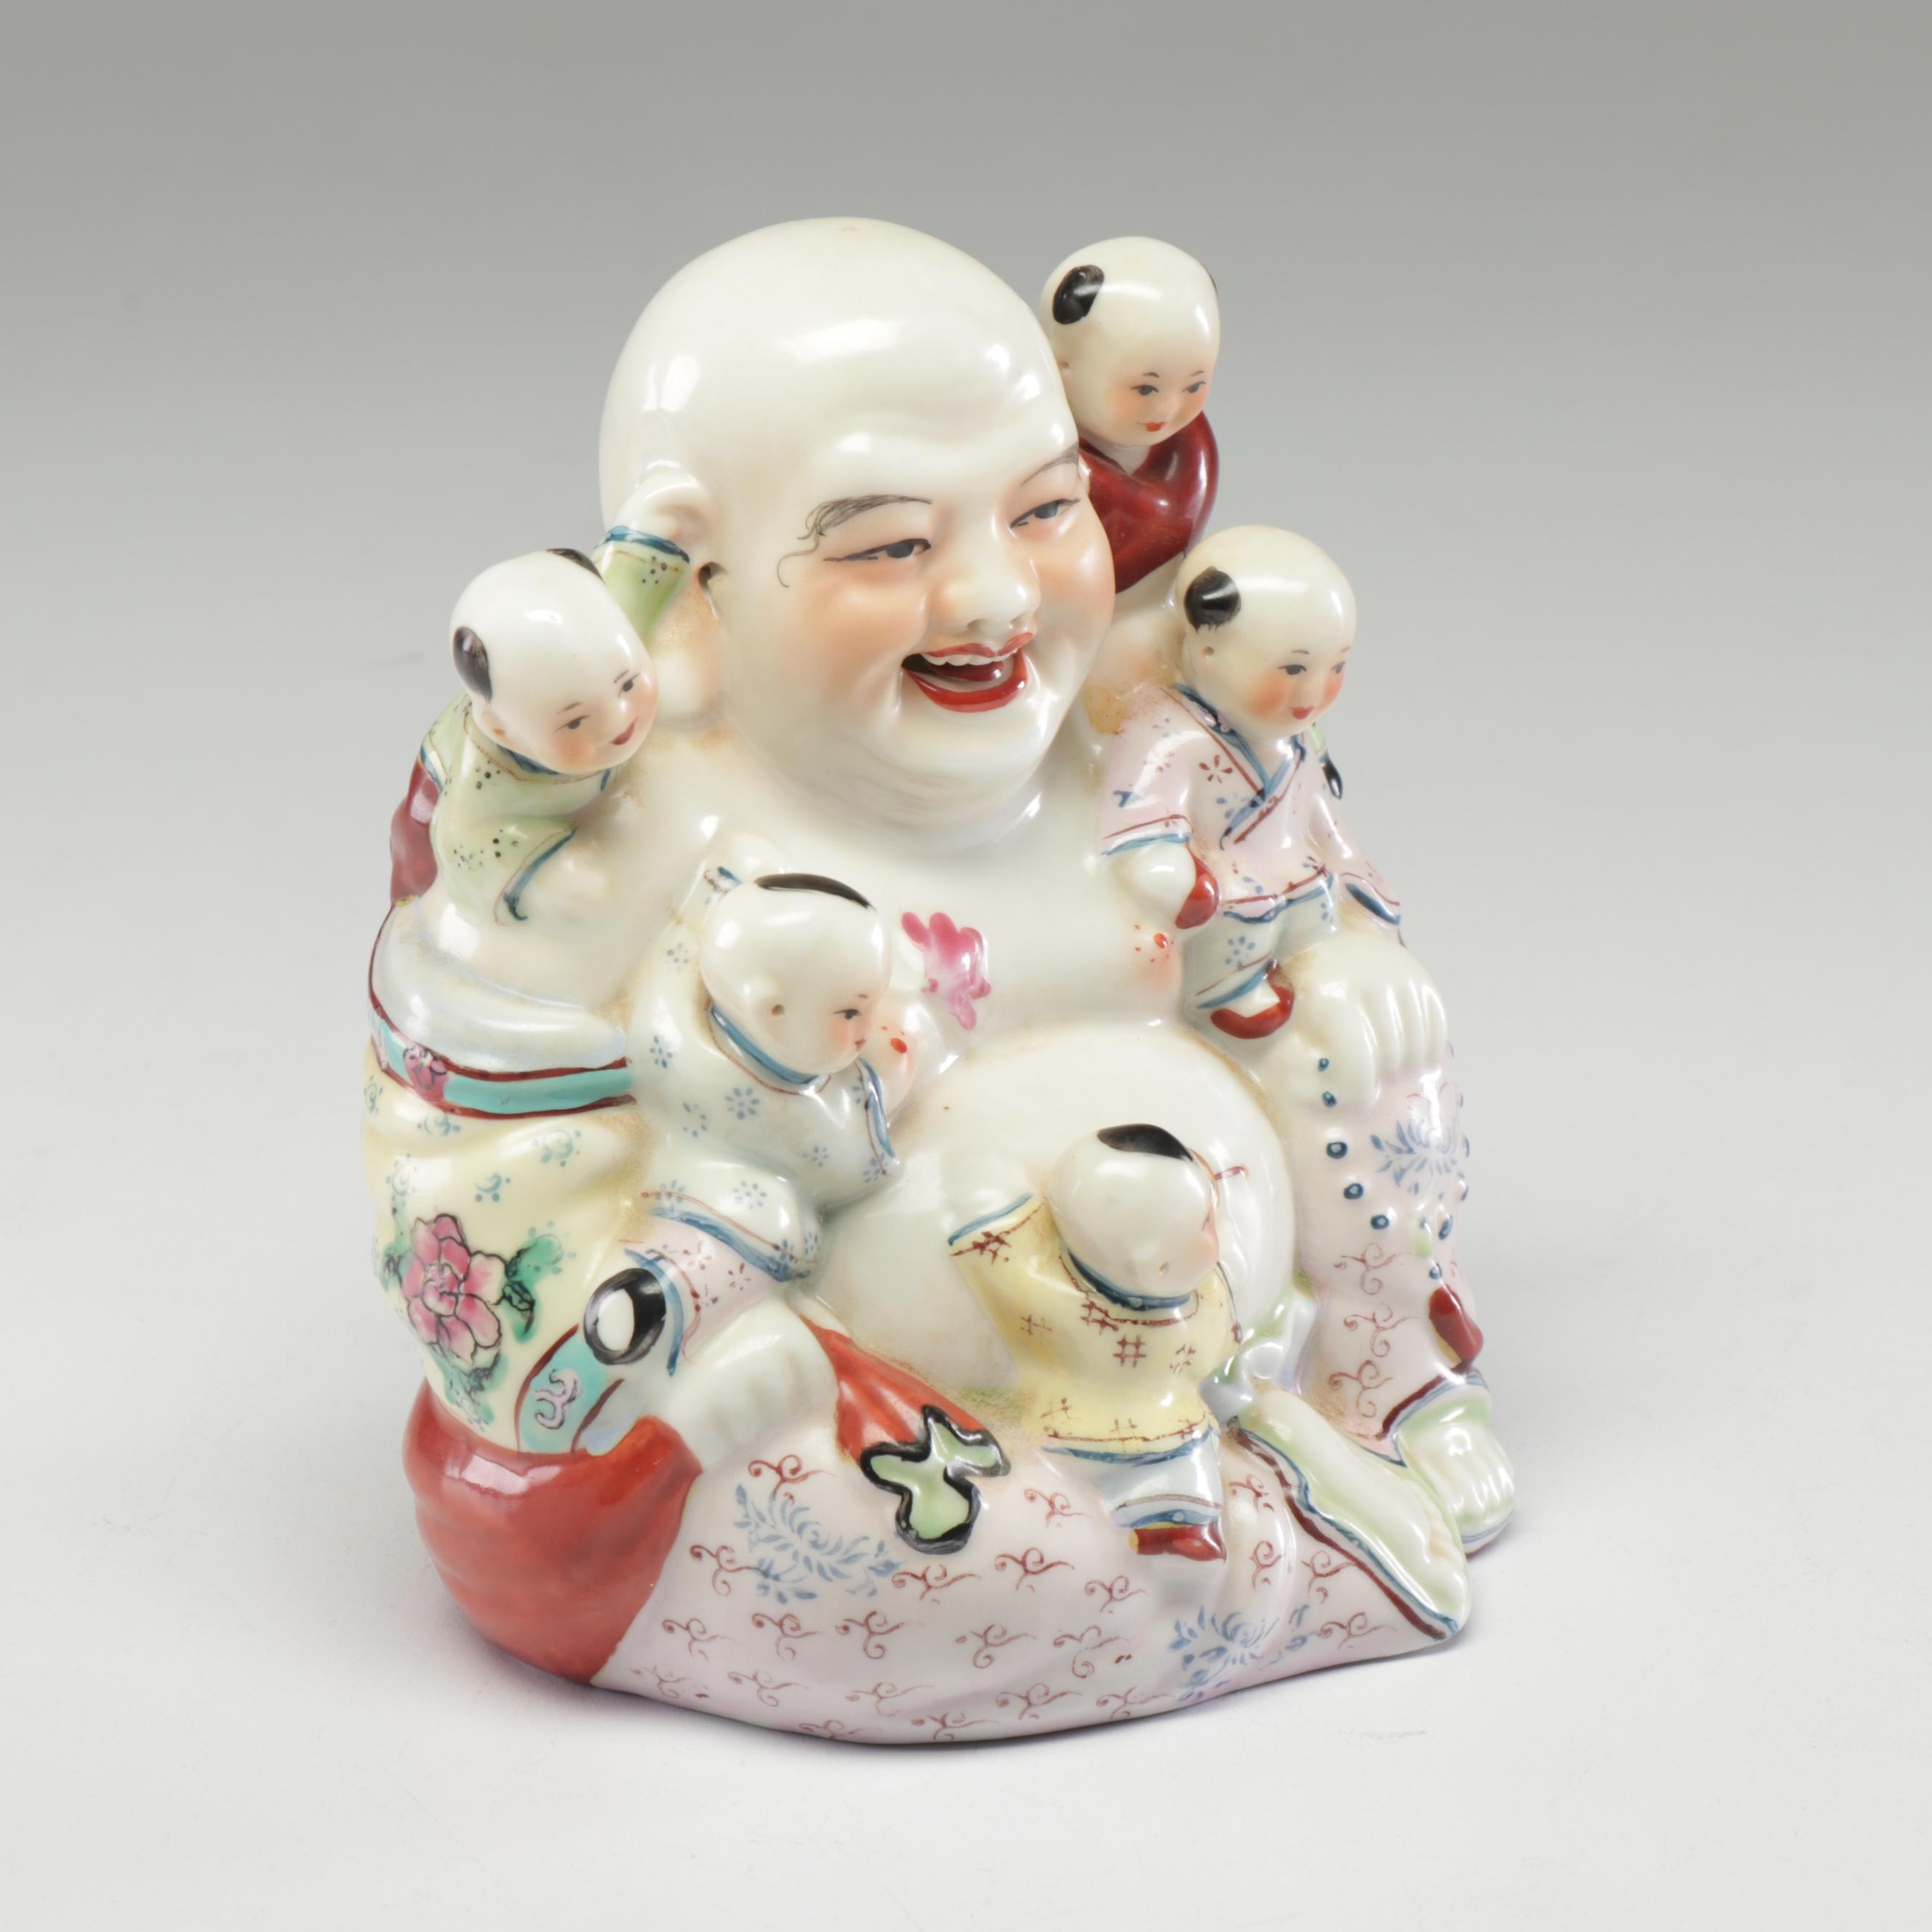 Chinese Porcelain Budai with Children Figurine, 20th Century